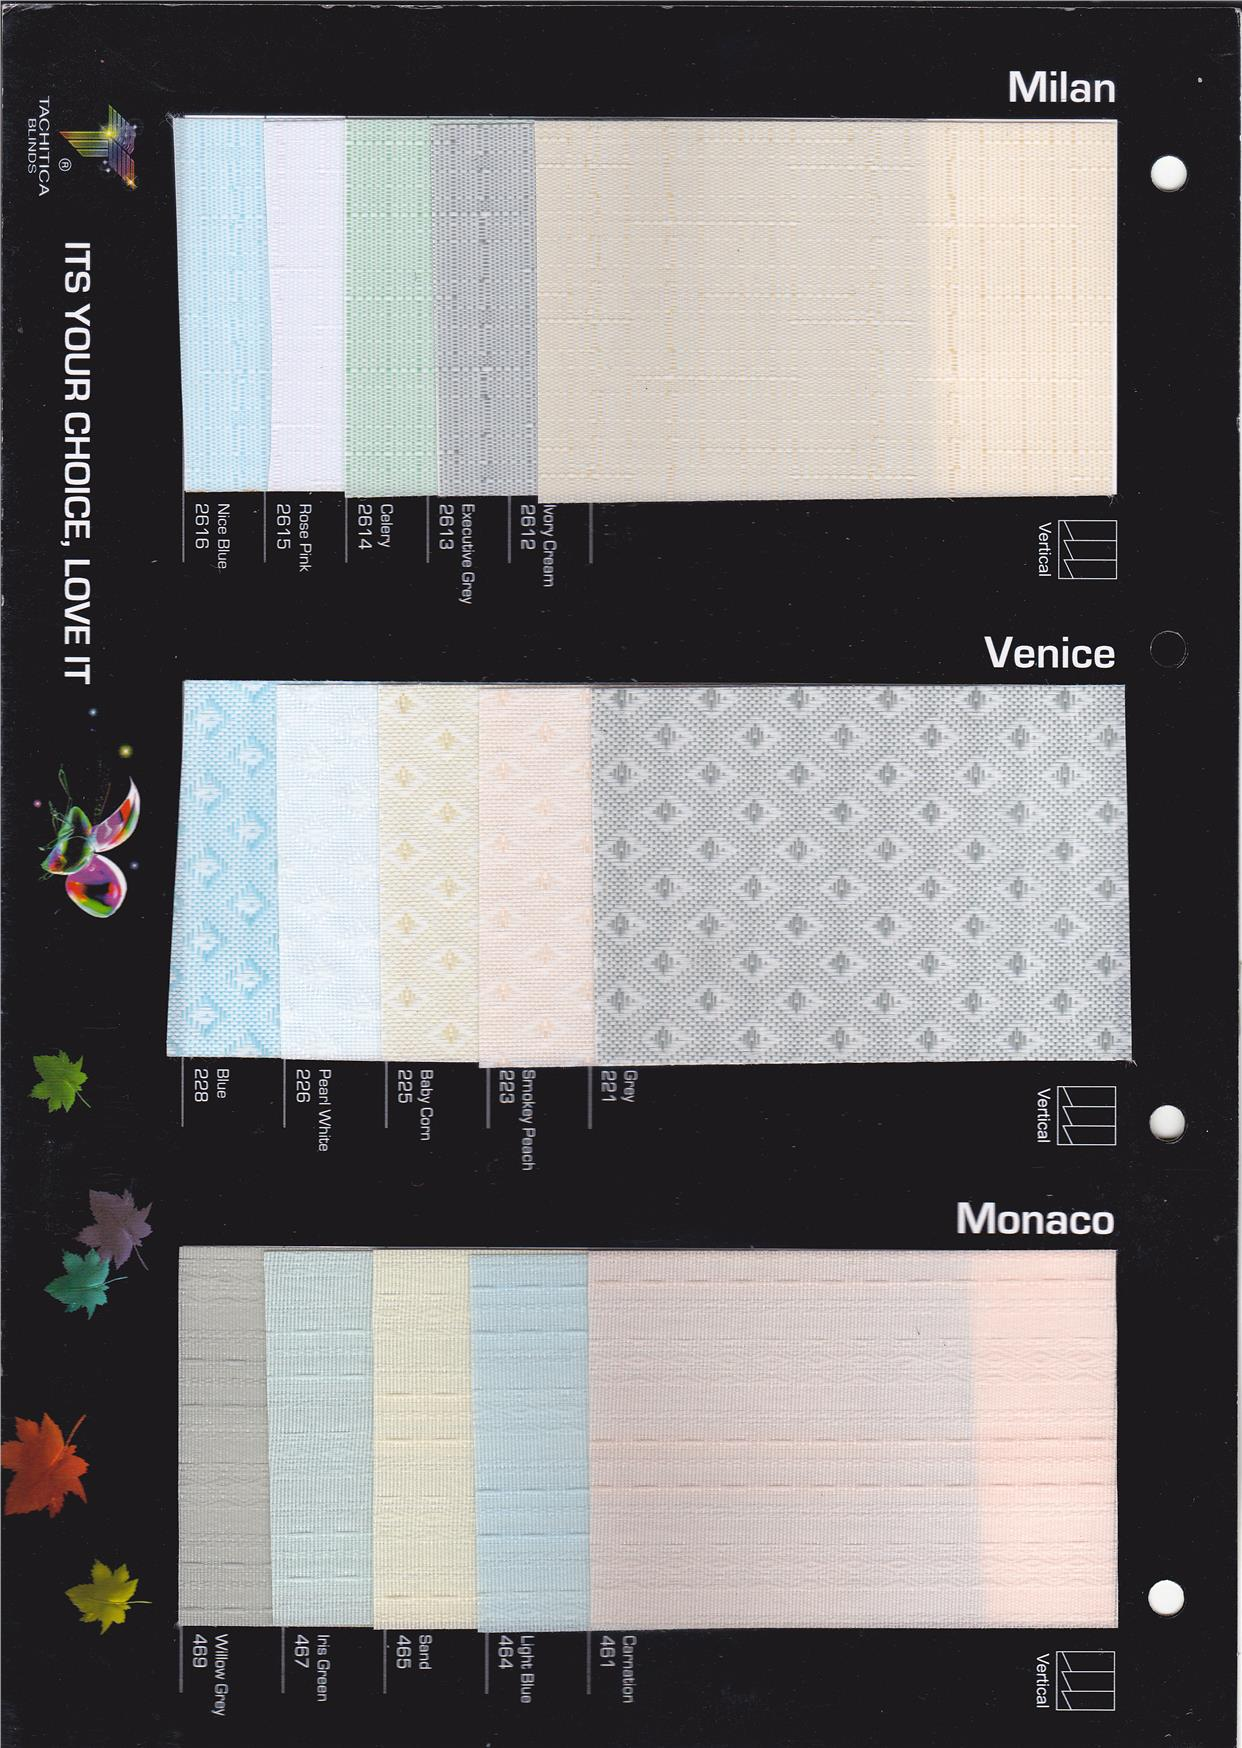 Vertical blinds supply and installati end pm